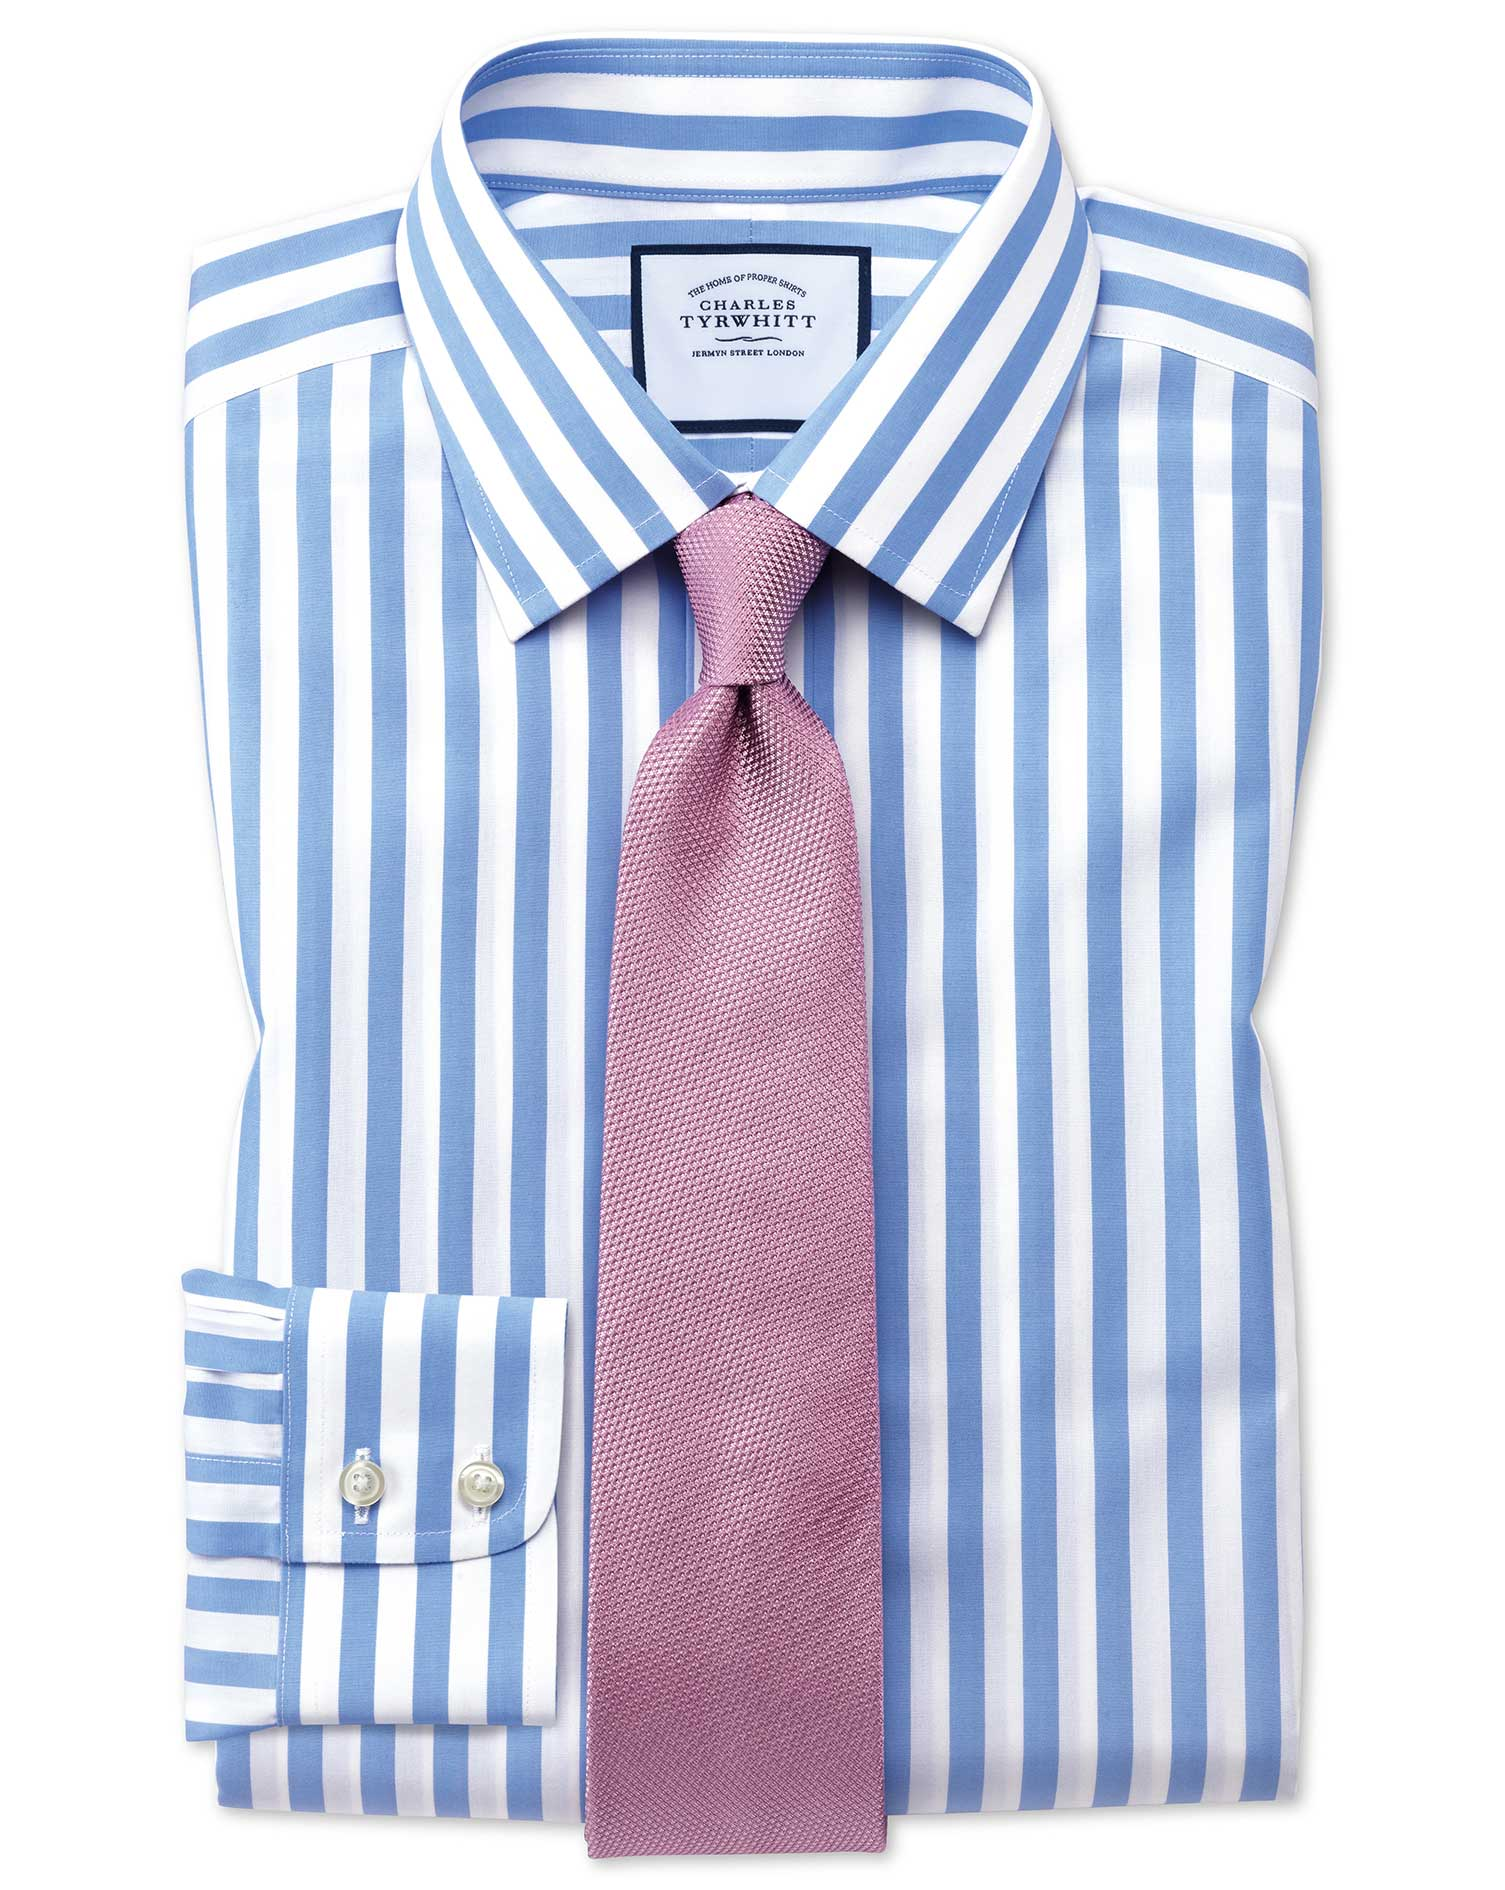 Extra Slim Fit Non-Iron Sky Blue Wide Bengal Stripe Cotton Formal Shirt Single Cuff Size 15/33 by Ch